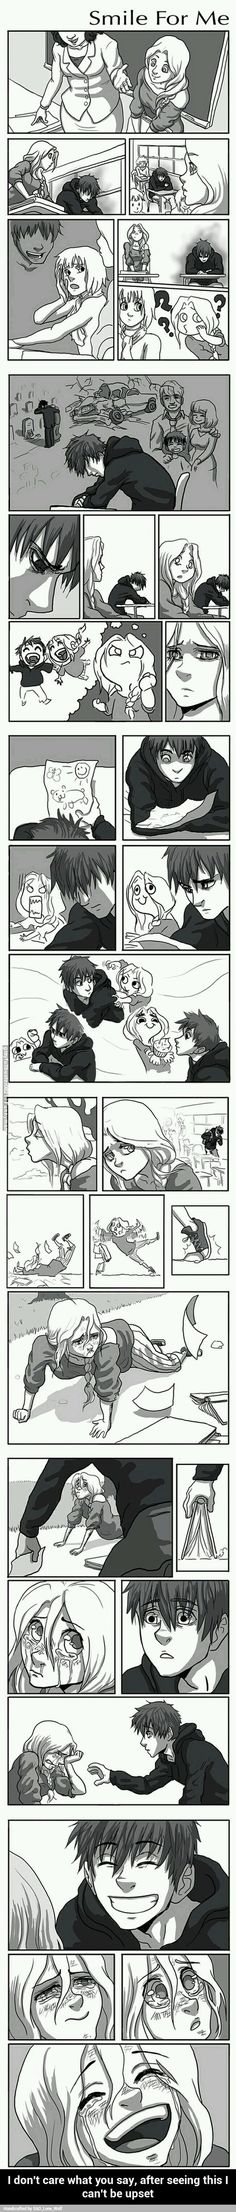 Awww! (Read it from right to left, like a manga)